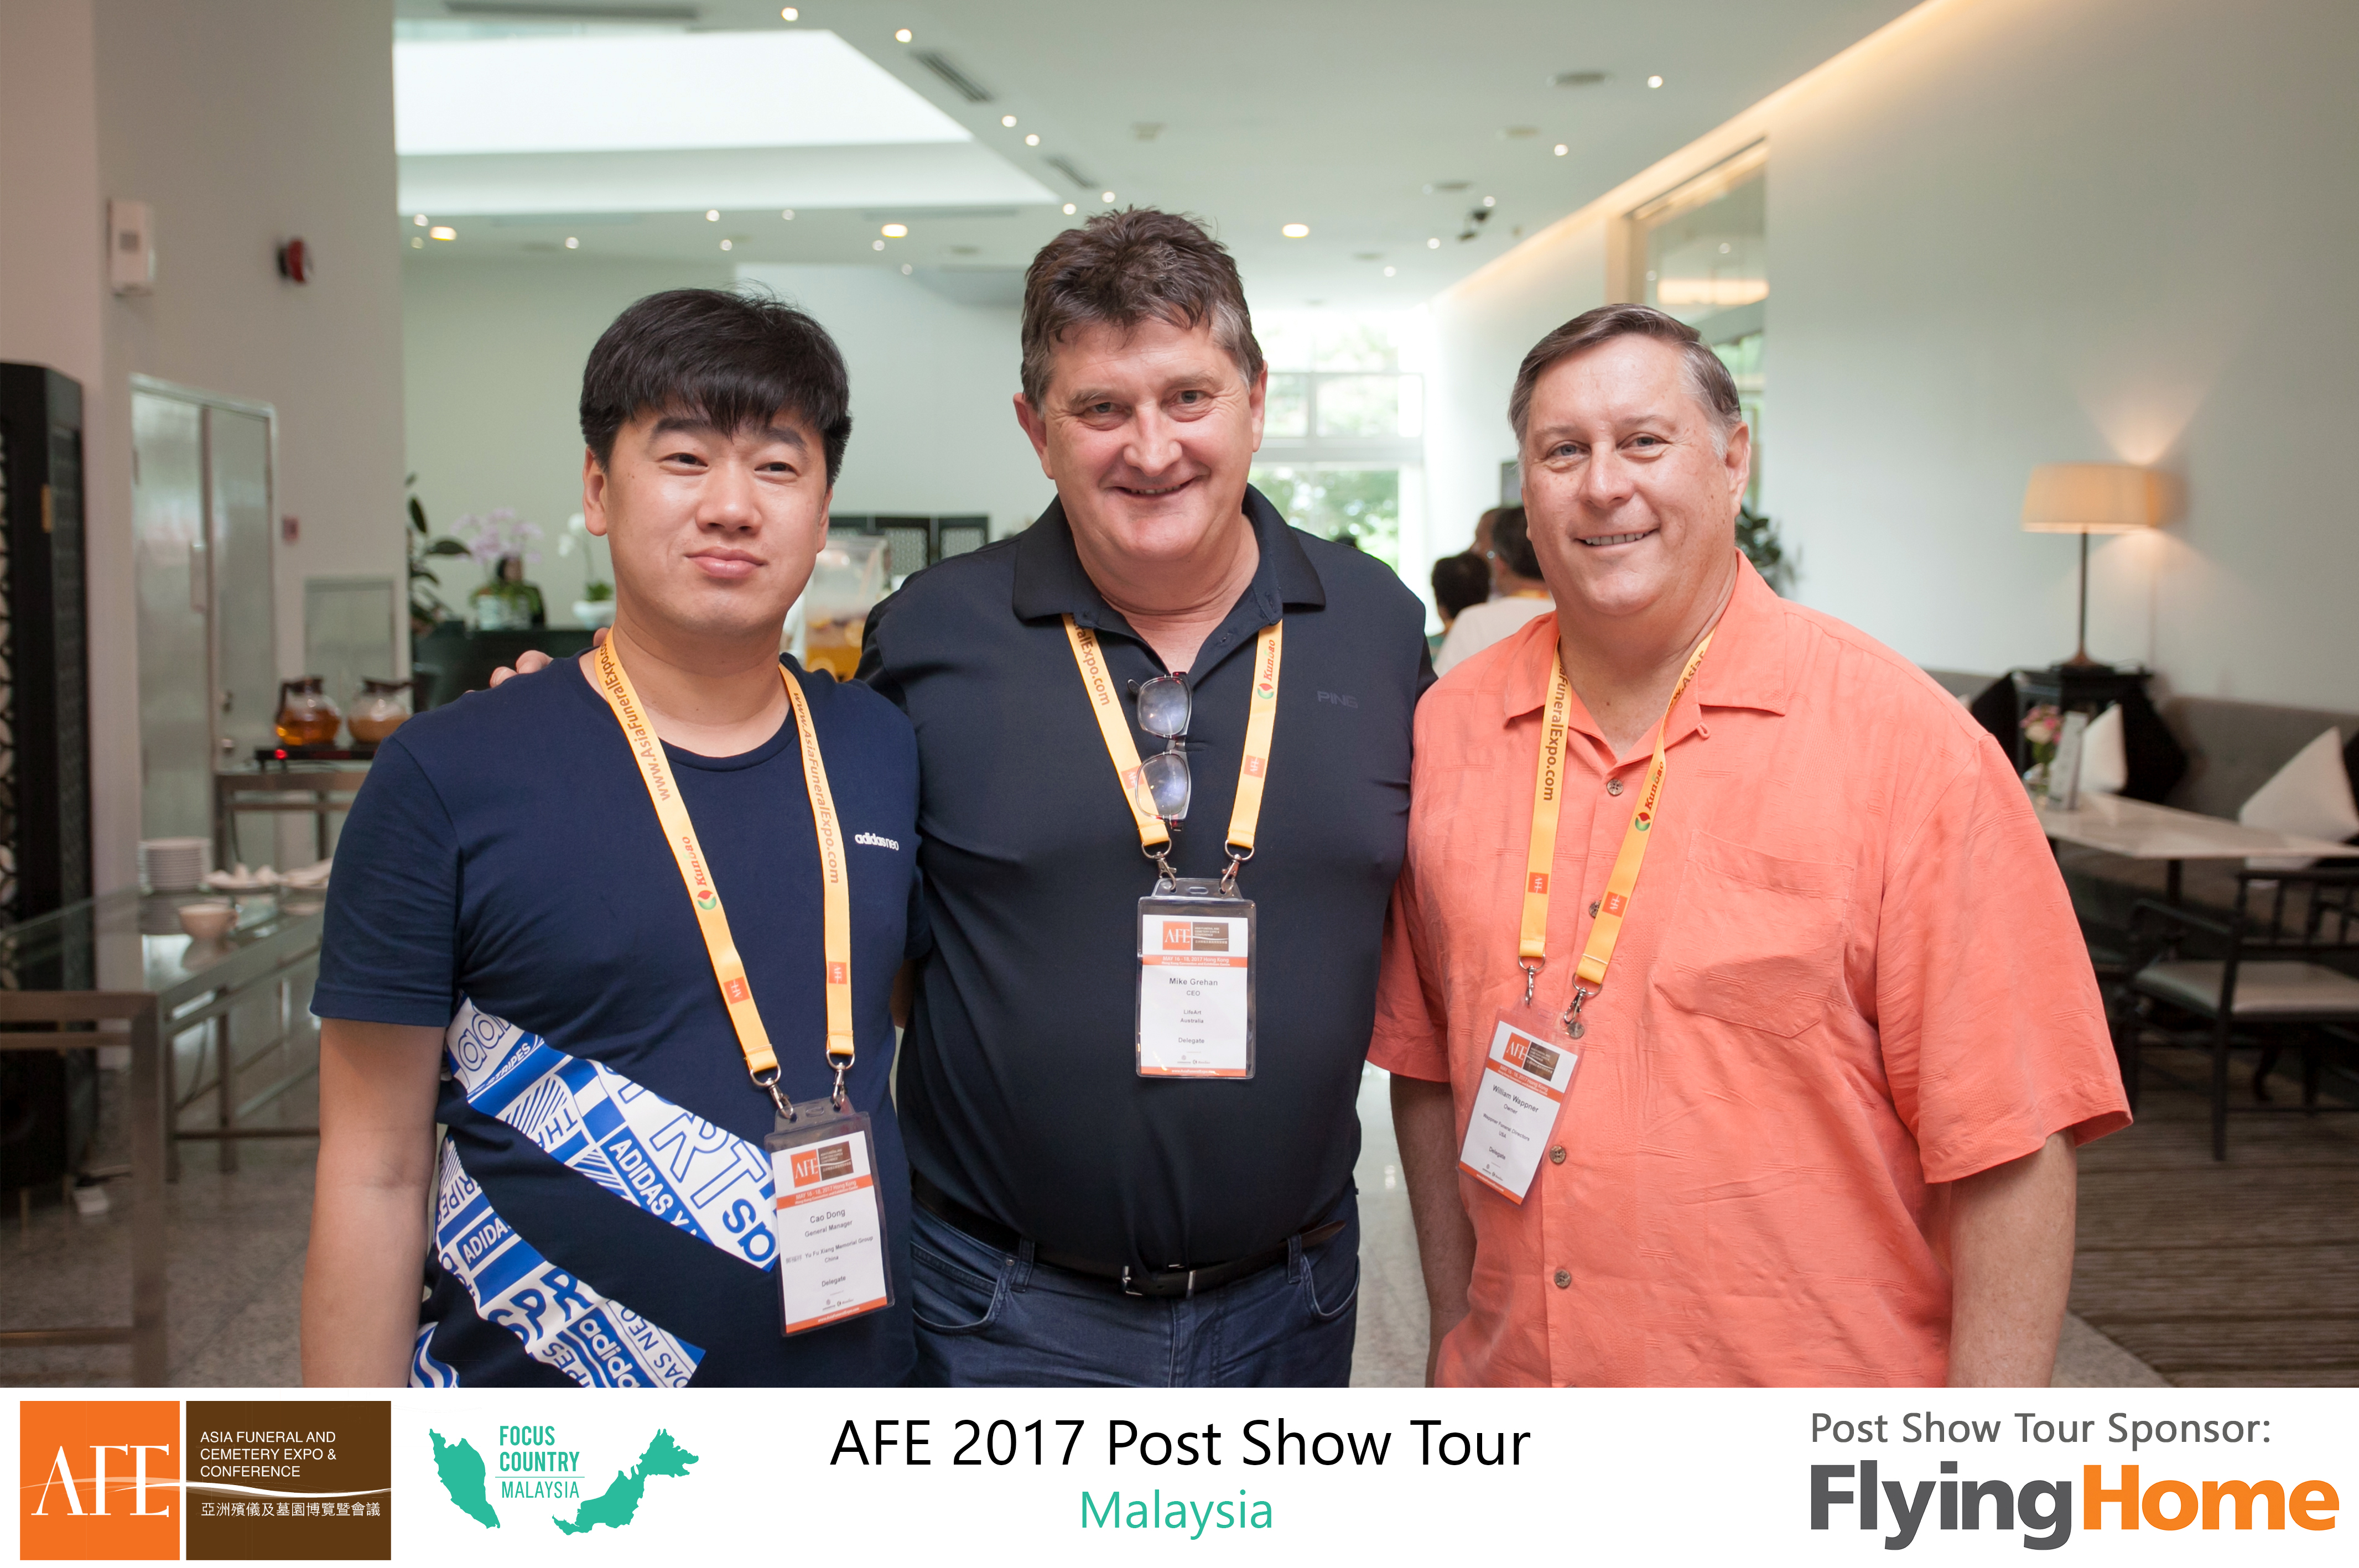 AFE Post Show Tour 2017 Day 3 -24